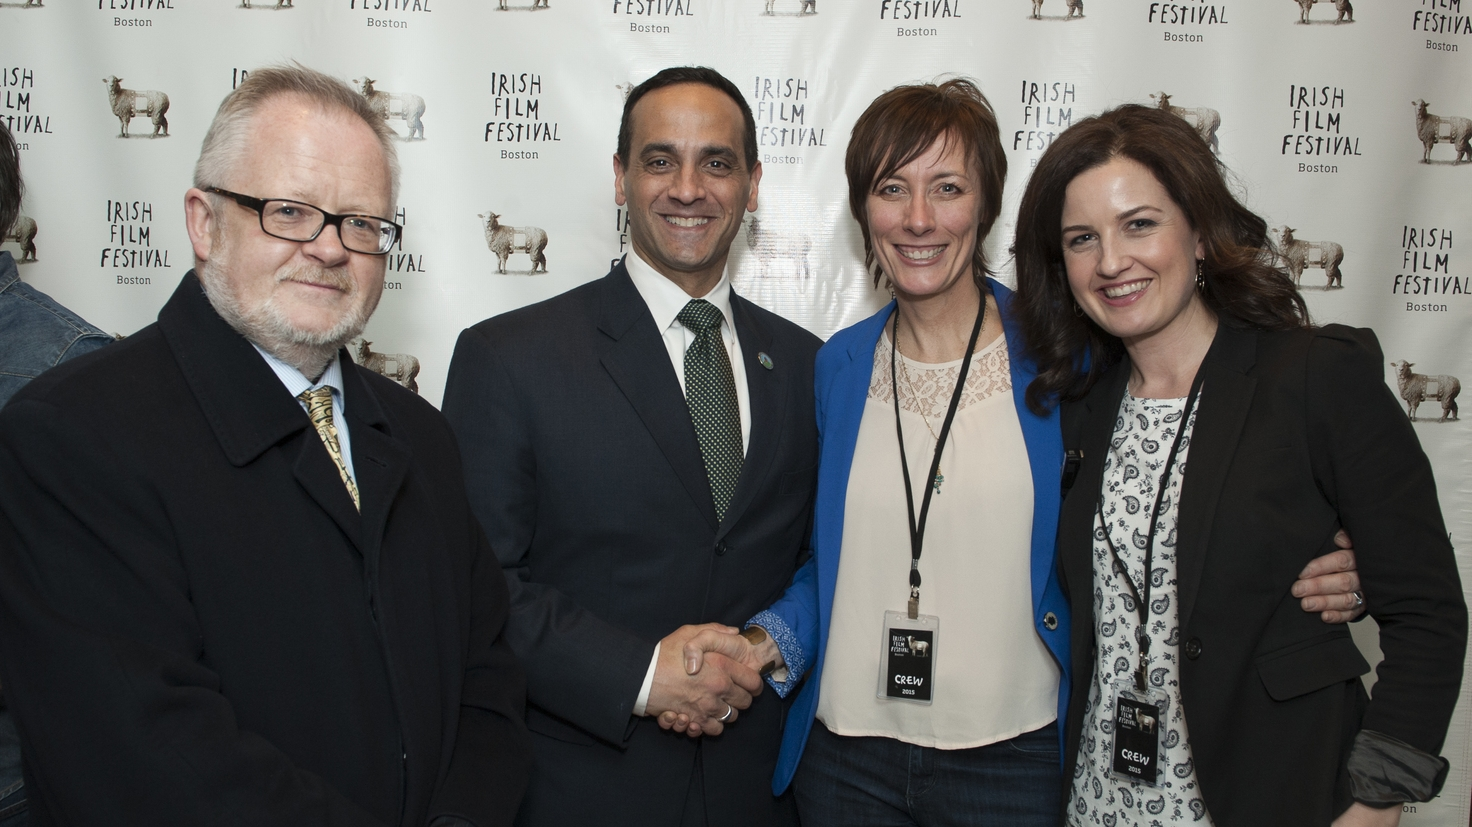 Consul General Breandán Ó Caollai and Mayor  Joseph Curtatone with Dawn Morrissey and Siobhan Fanning, Irish Film Festival, Boston